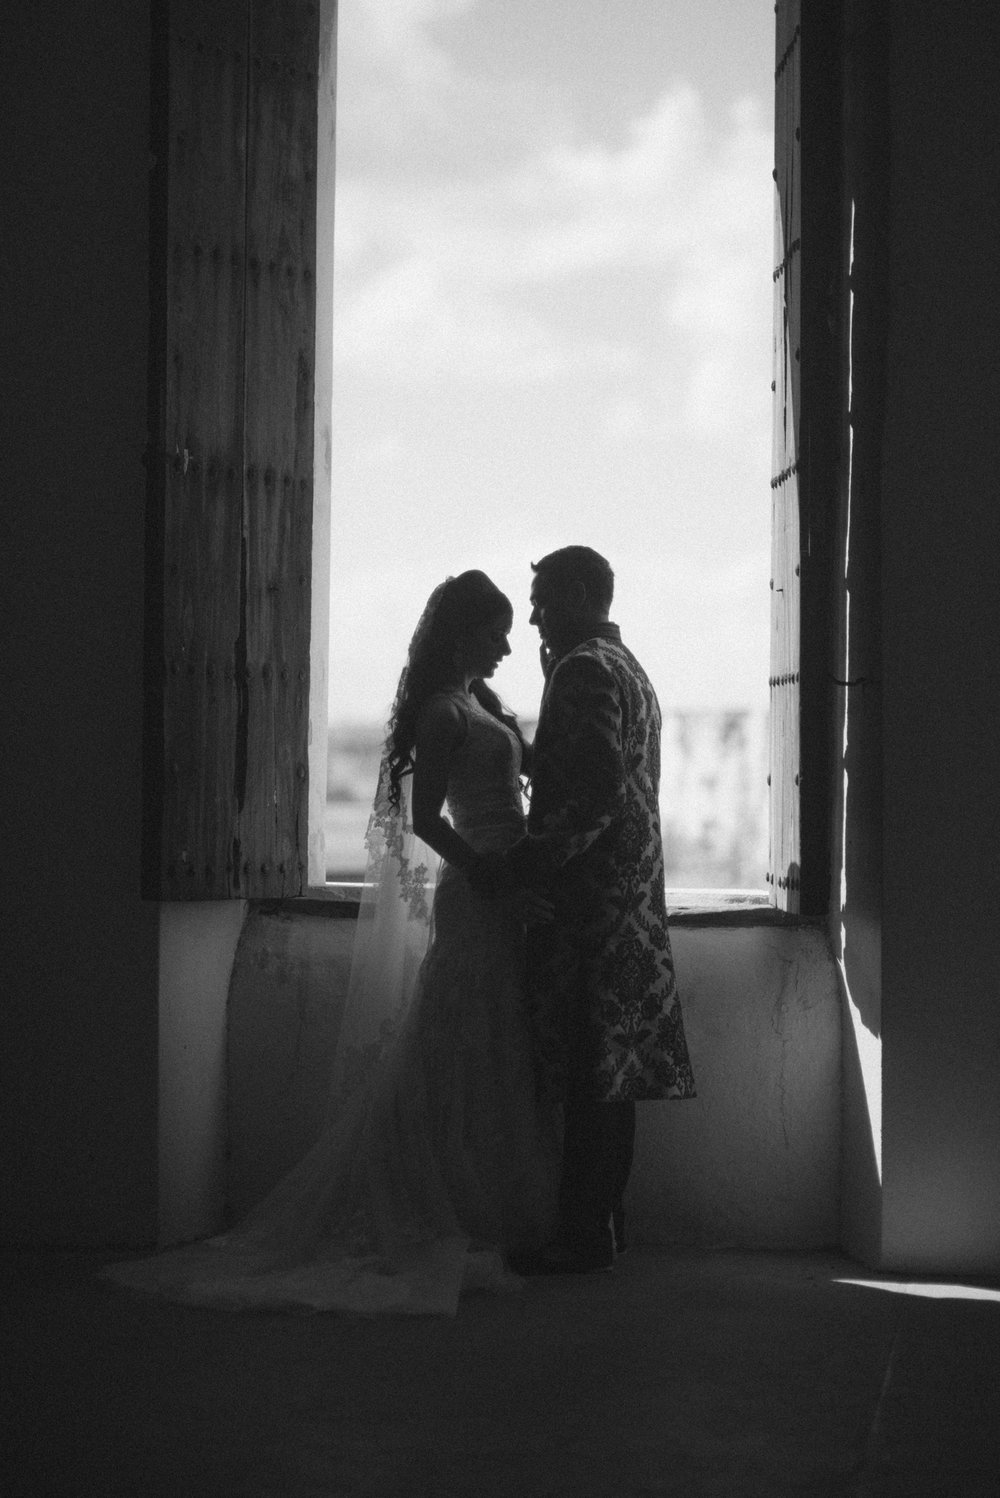 Puerto Rico Wedding Photography Destination Photographer Boris Zaretsky San Juan PR Casino Antiguo La Concha ALI_9038-2.jpg